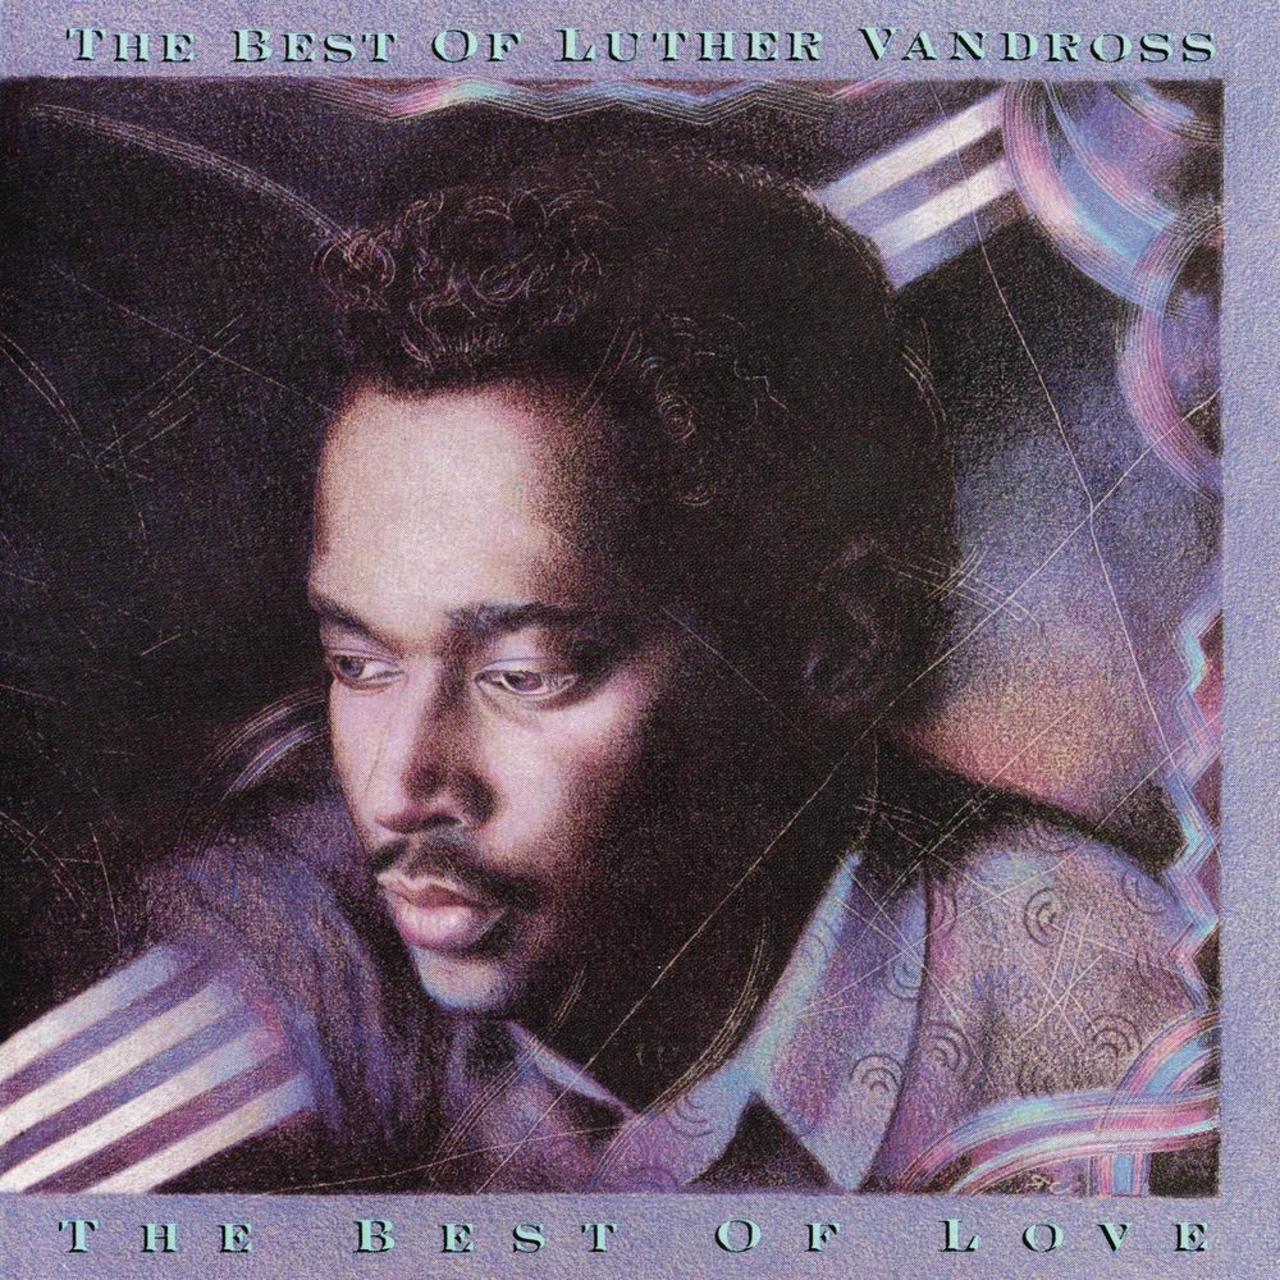 The Best of Luther Vandross The Best of Love / Luther Vandross TIDAL